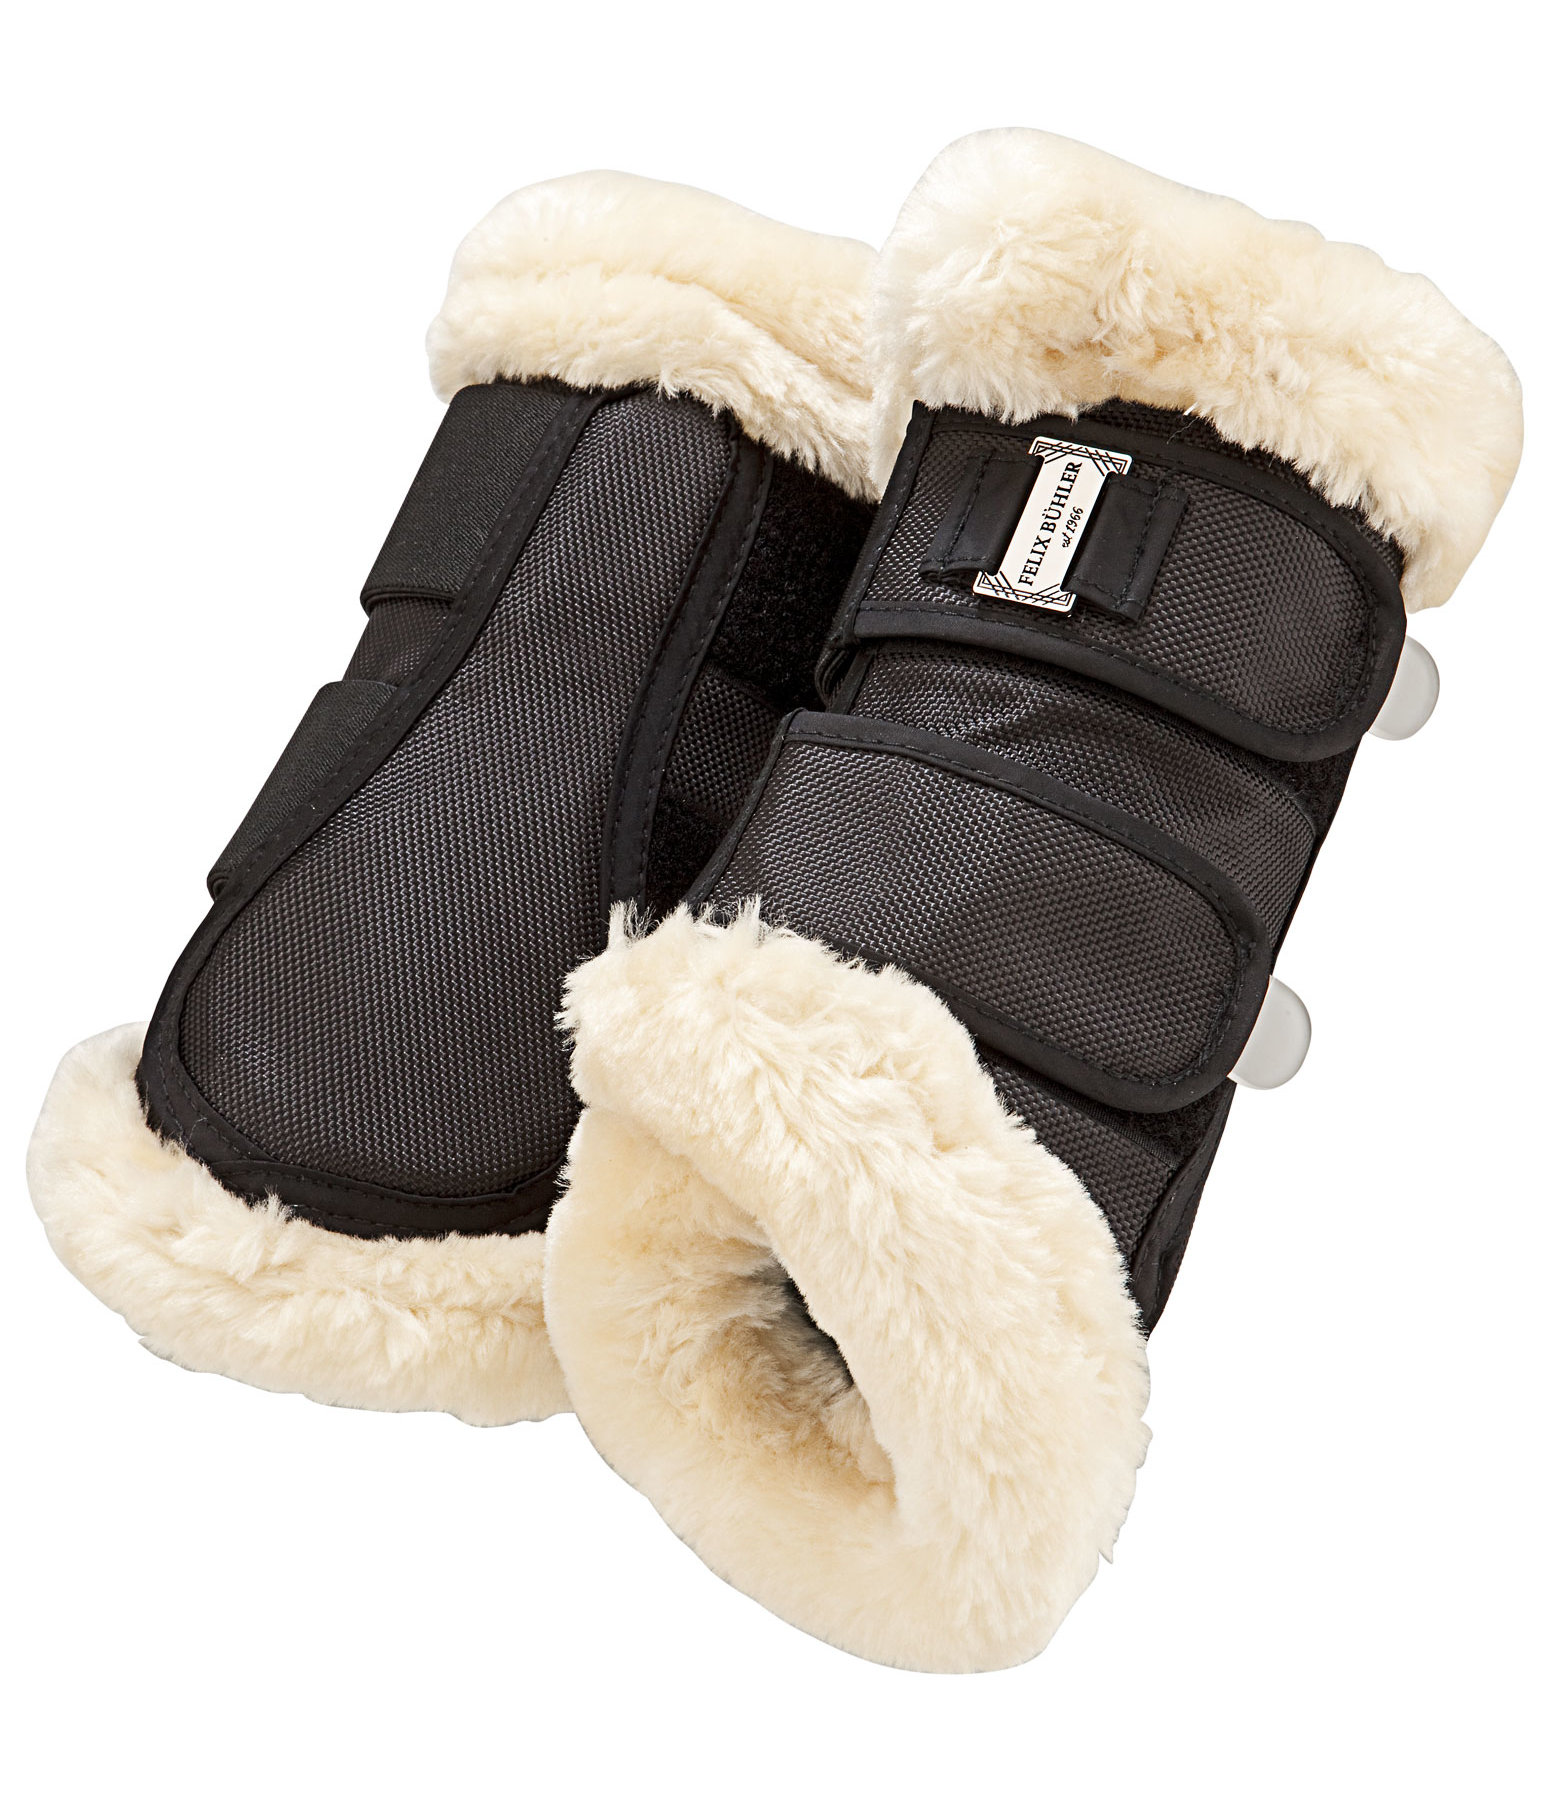 Teddy Fleece Dressage Boots Essential, front legs